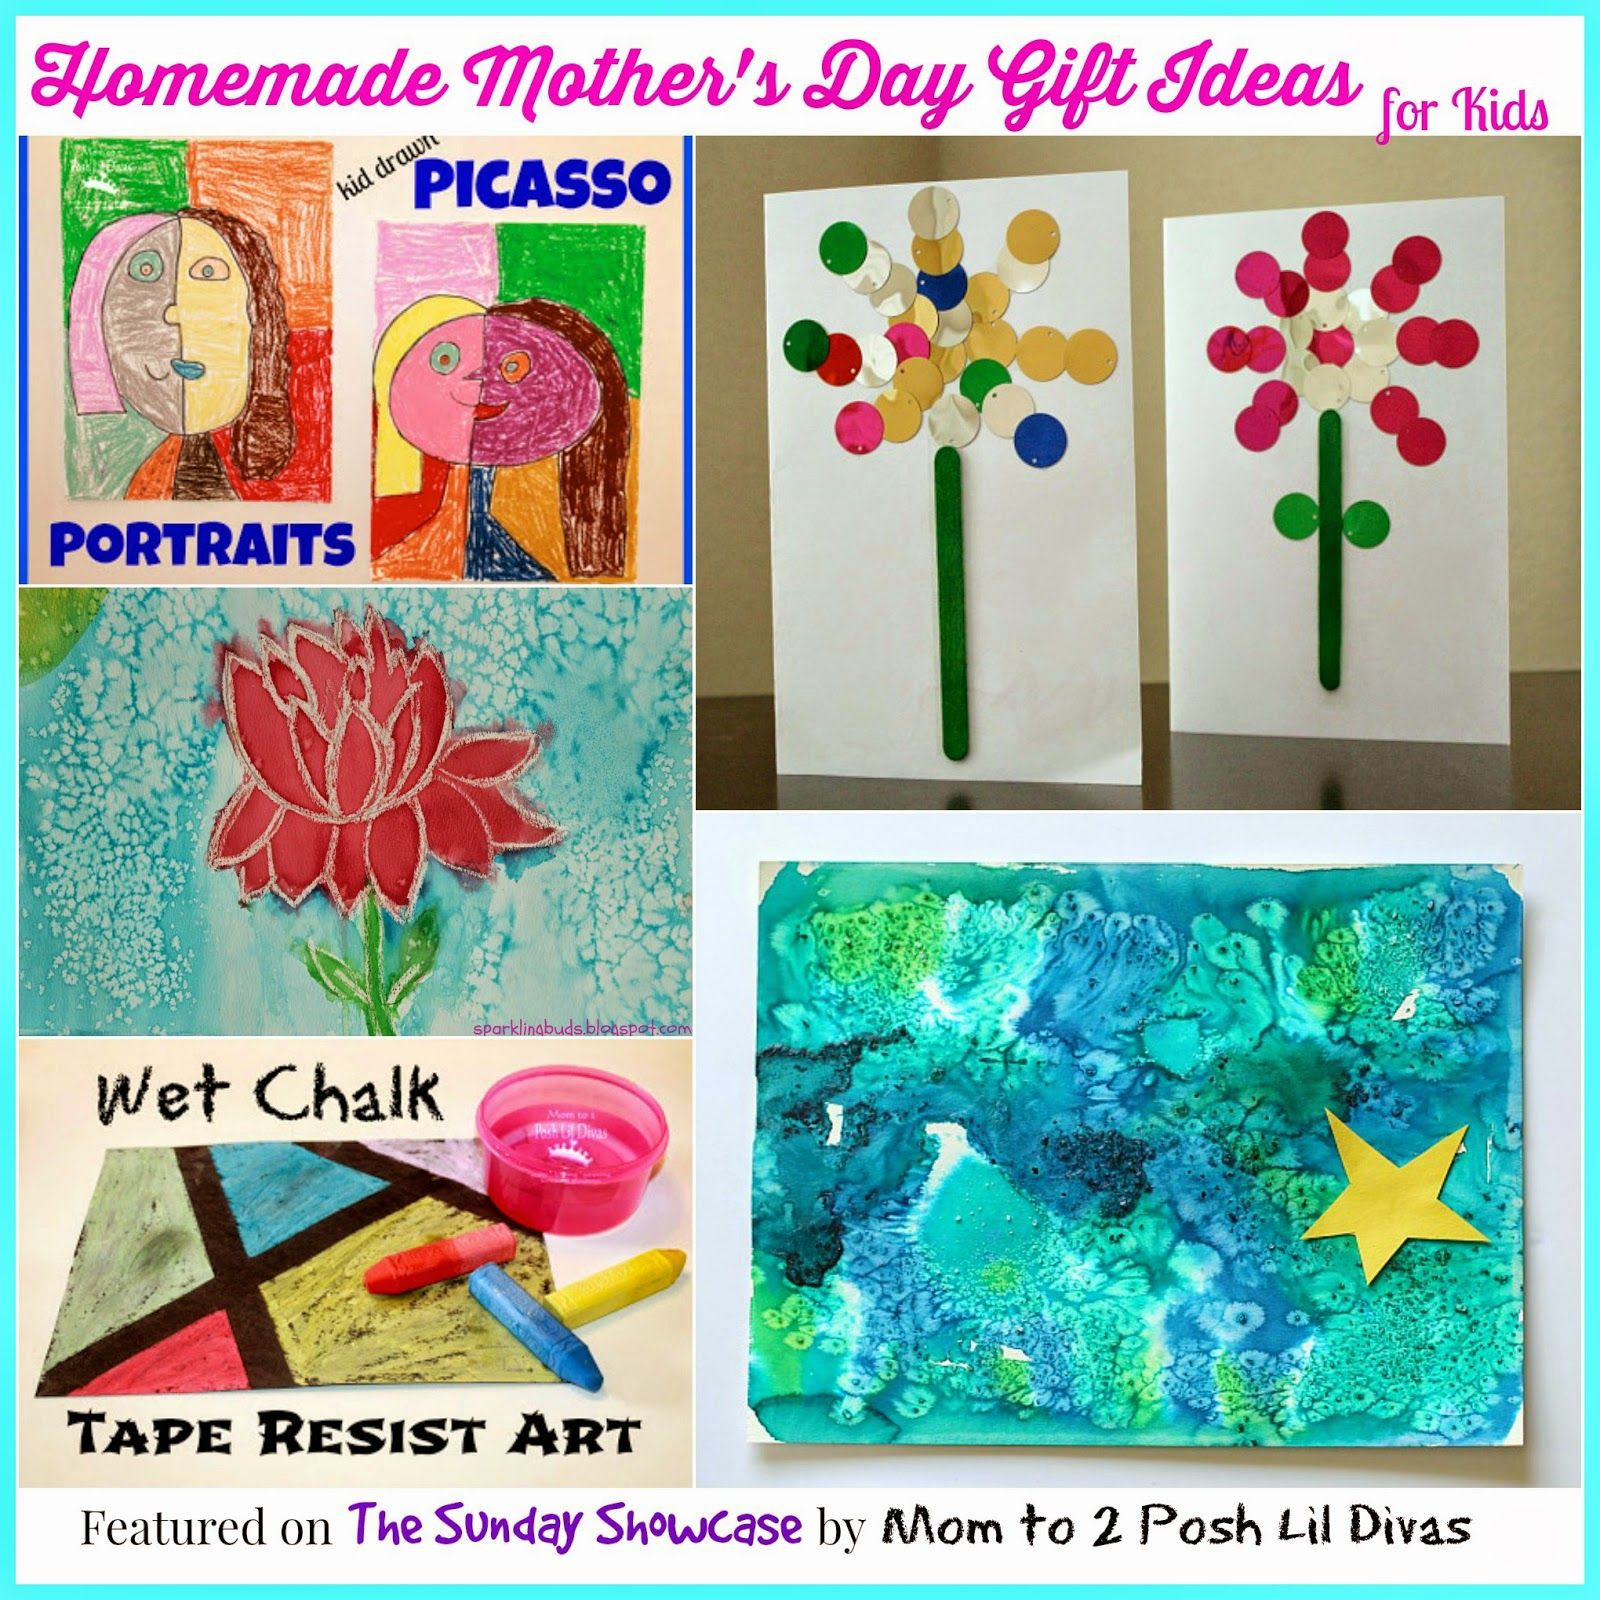 Homemade Gift Ideas That Kids: Mom To 2 Posh Lil Divas: Homemade Mother's Day Gifts For